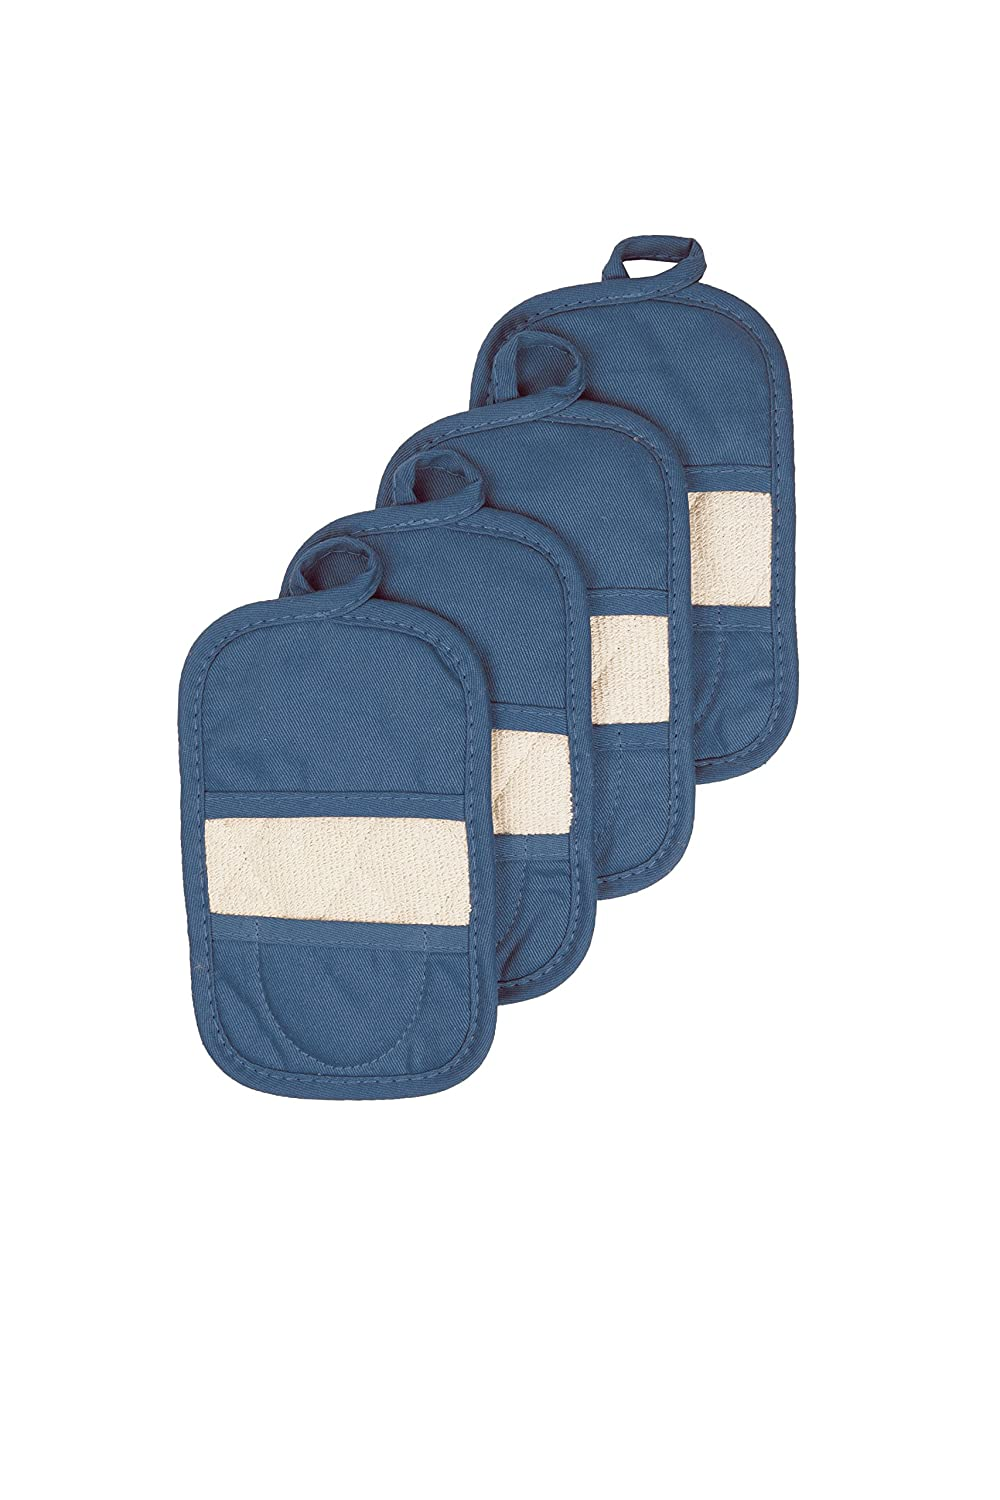 Ritz Royale Collection 100% Cotton Terry Cloth Mitz, Dual-Function Pot Holder/Oven Mitt Set, 4-Pack, Federal Blue